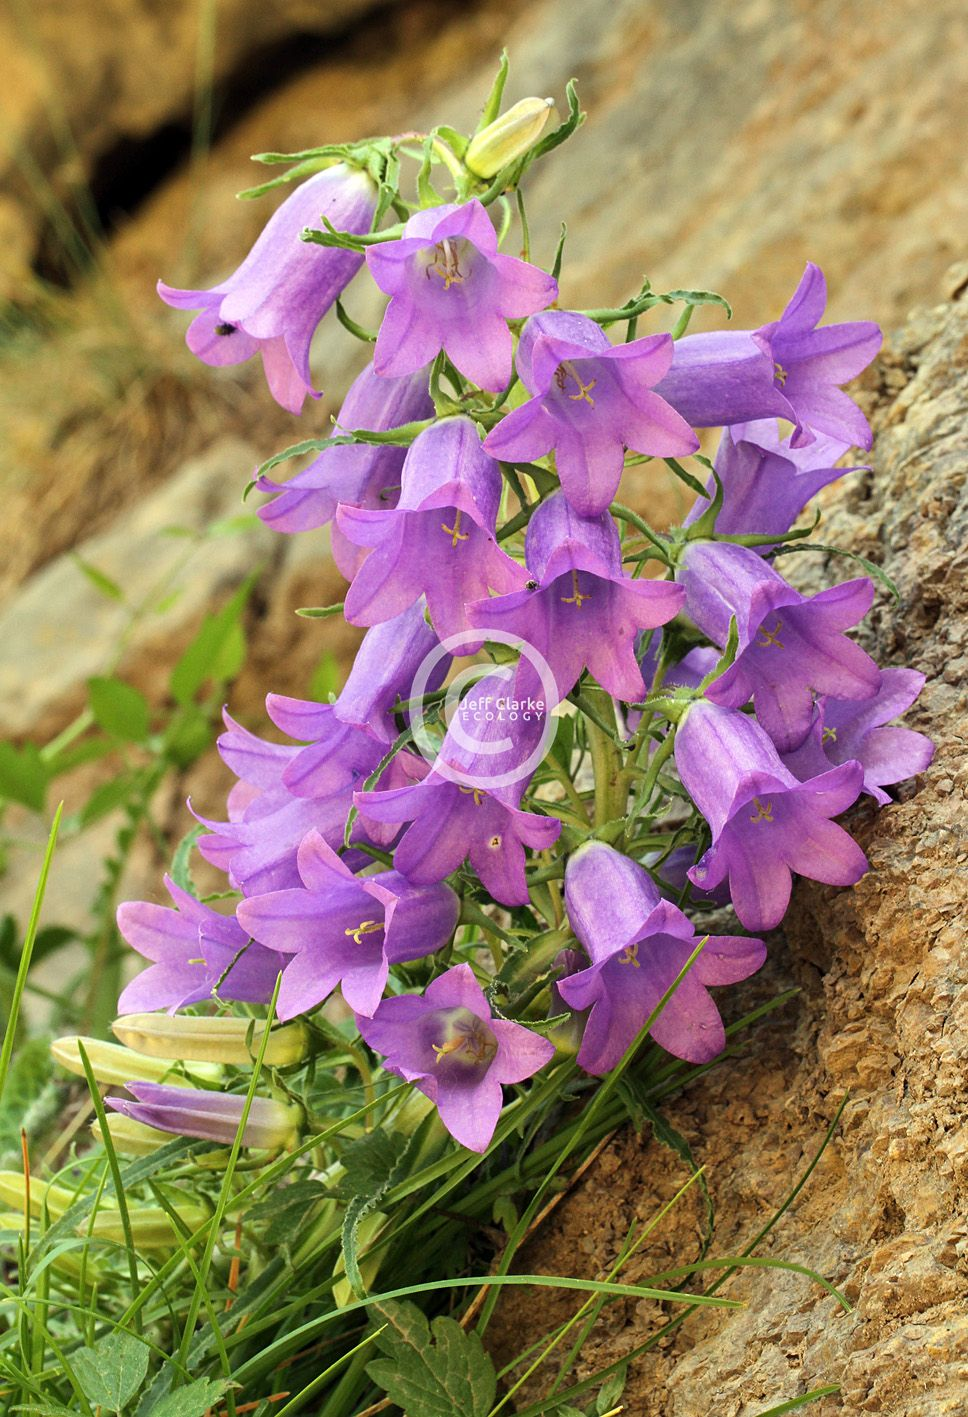 b_0_0_0_10_images_Pyrenean_Bellflower.jpg